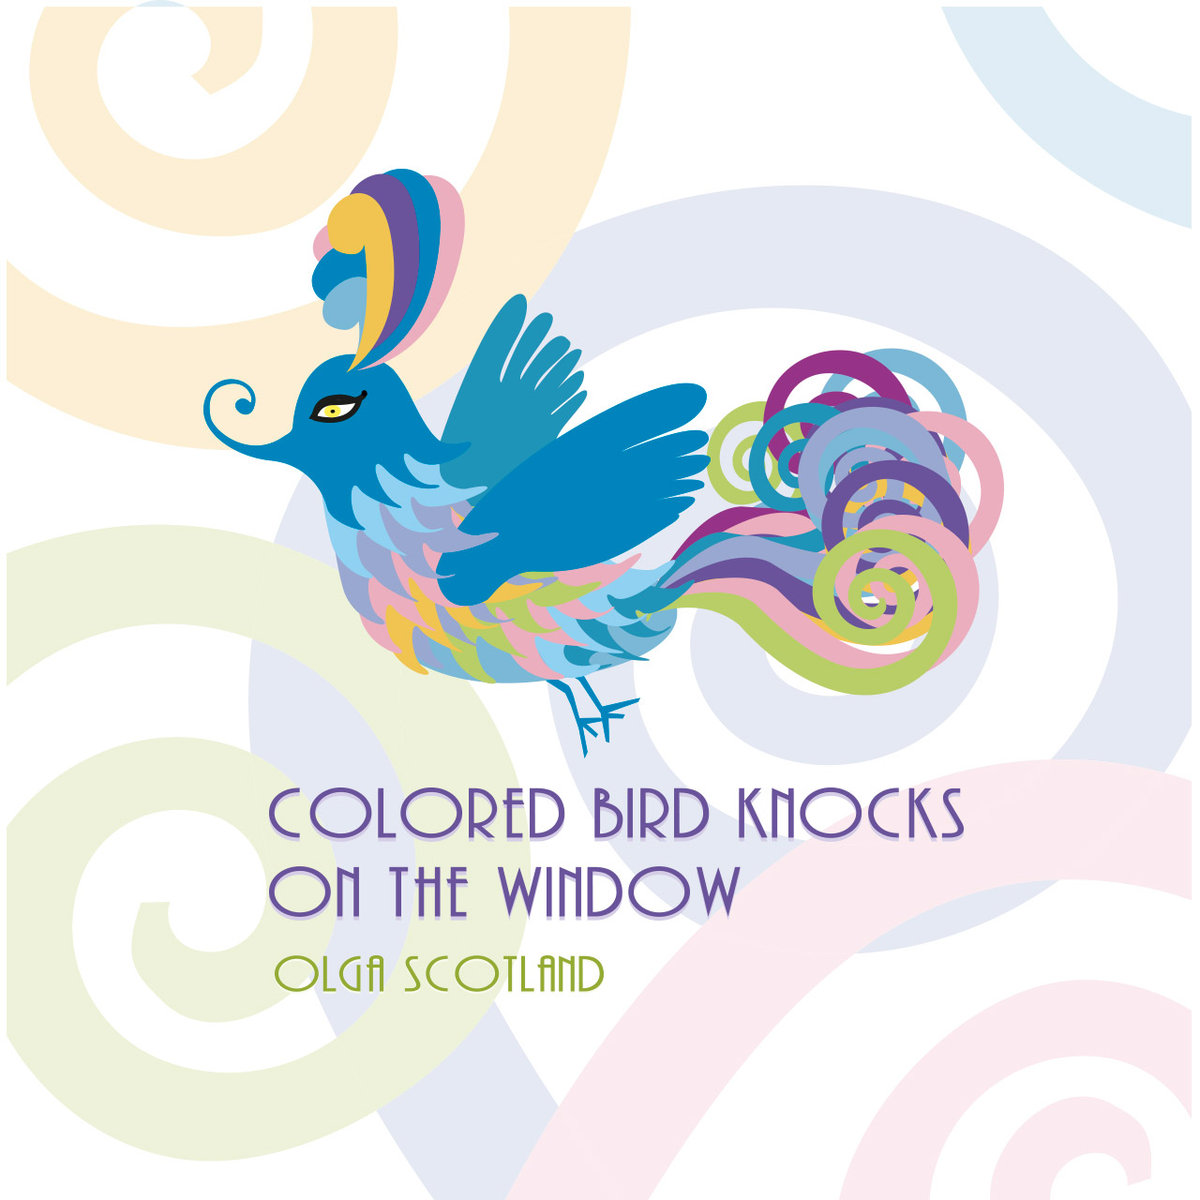 Olga Scotland - In The Meadow @ 'Colored Bird Knocks On The Window' album (soundtrack, ambient)